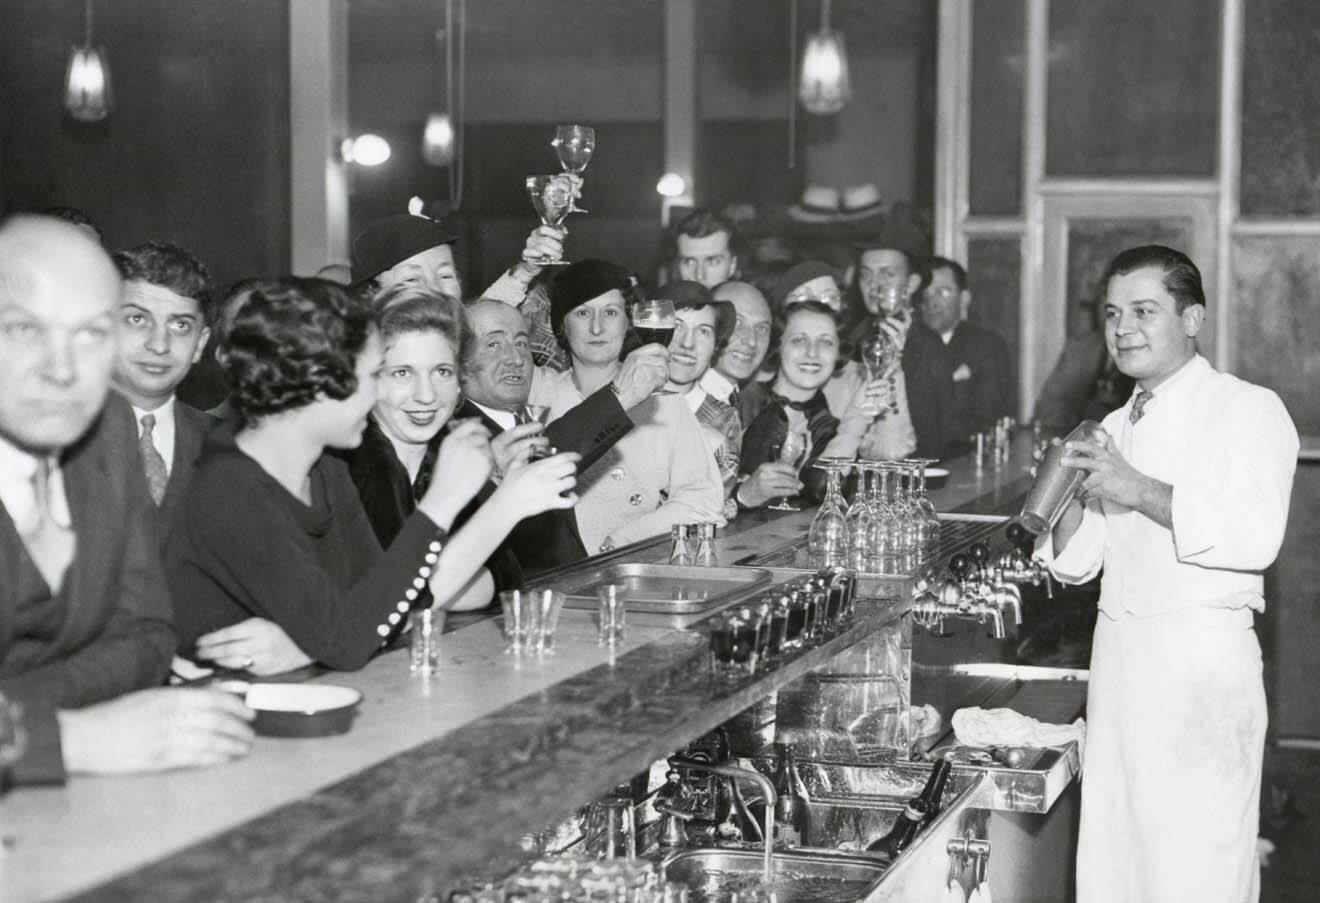 December 1933 at a Philadelphia Bar When Prohibition Was Repealed